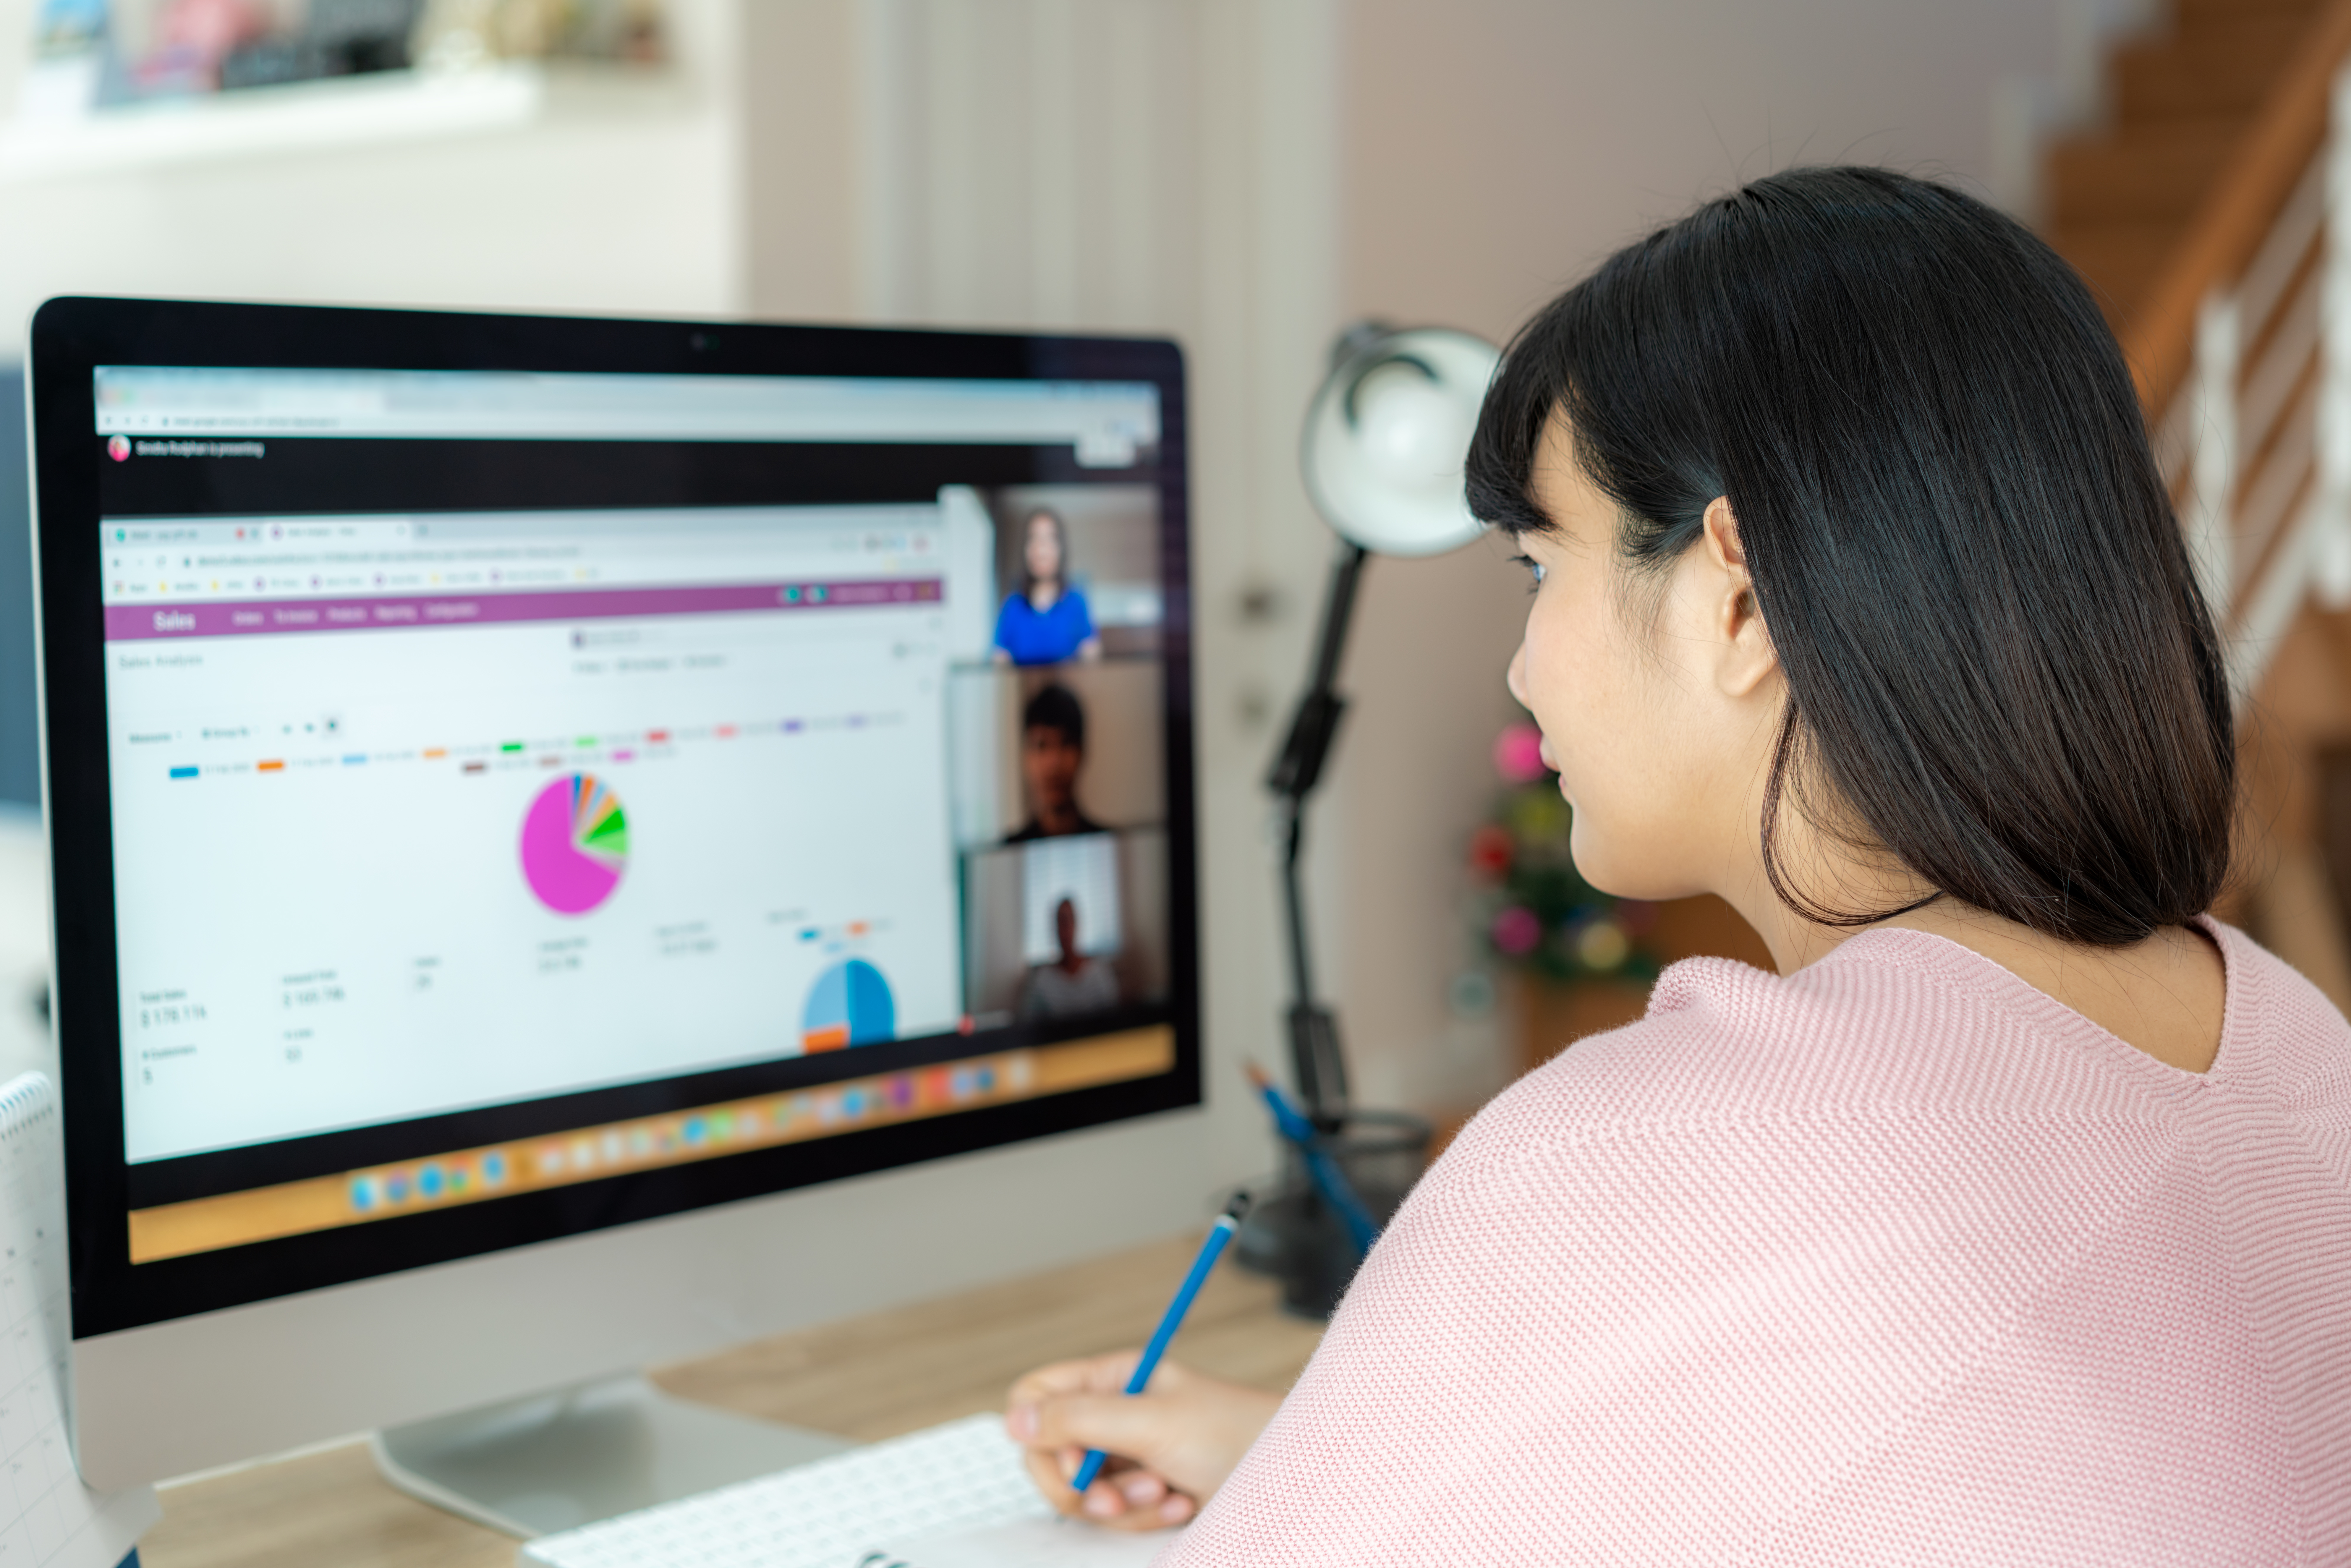 Credit Department: Operating Geographically Dispersed Work-From-Home Offices